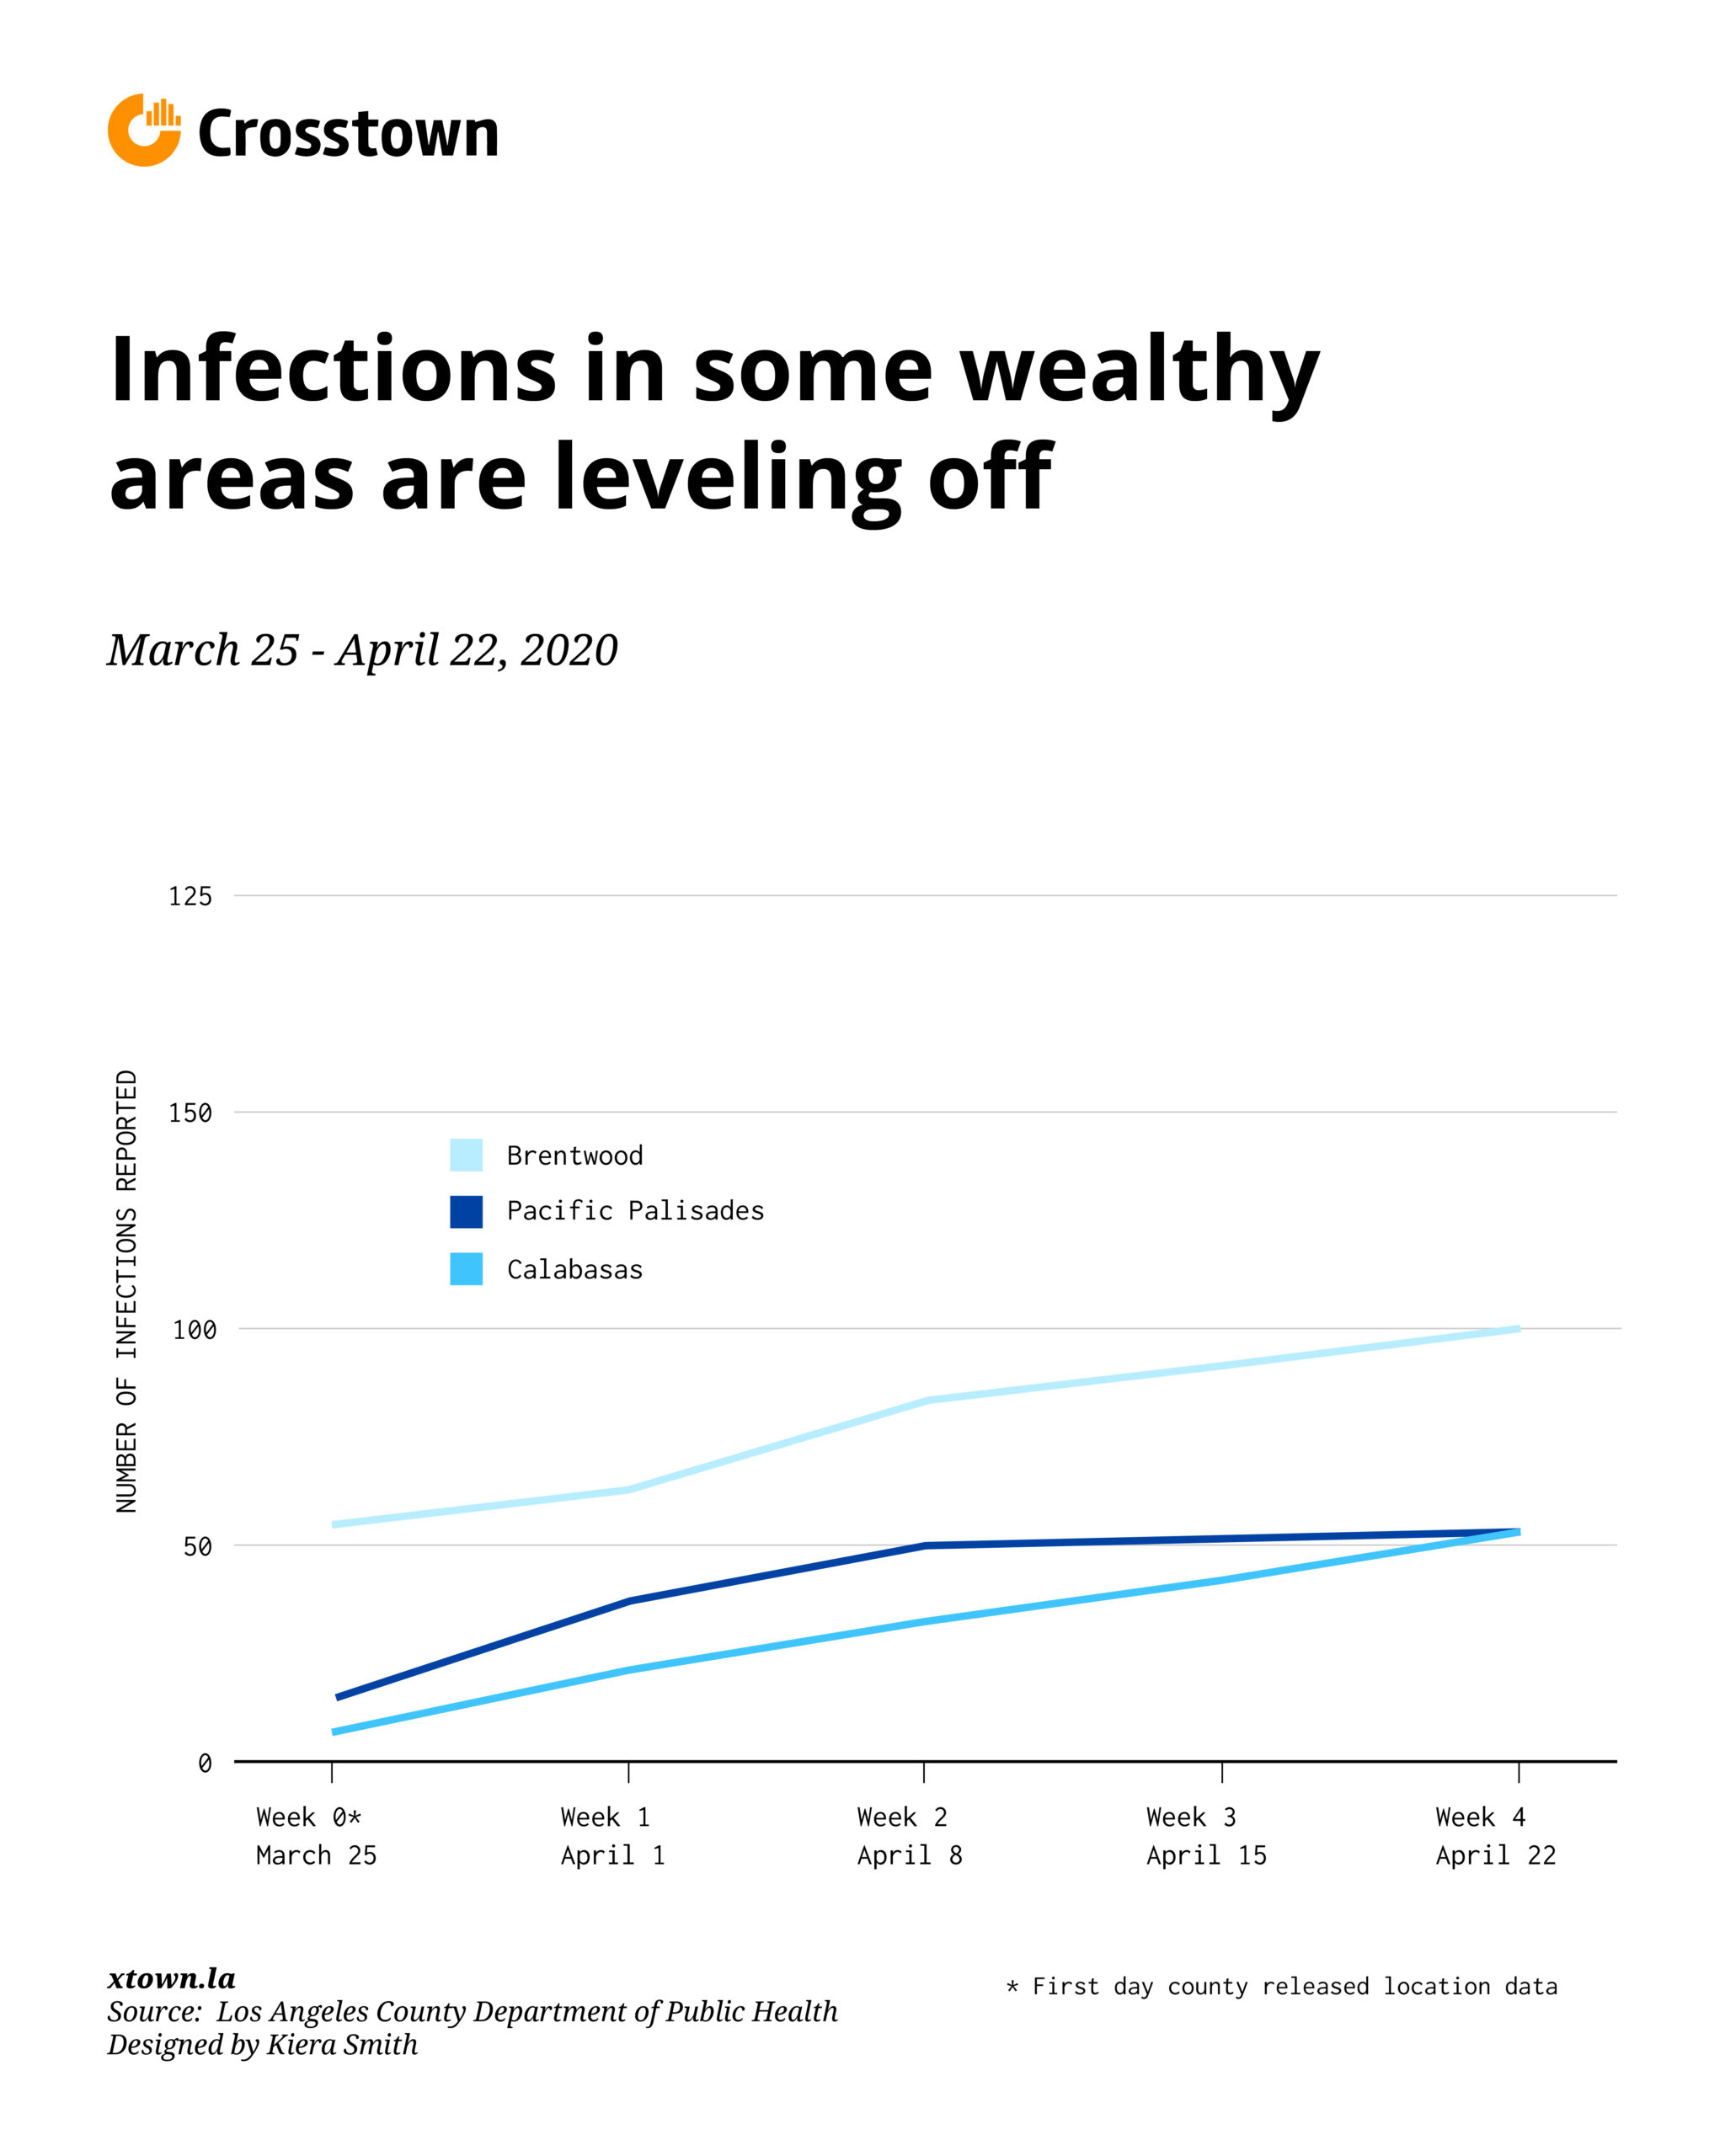 In some wealthy areas, infection rates are leveling off